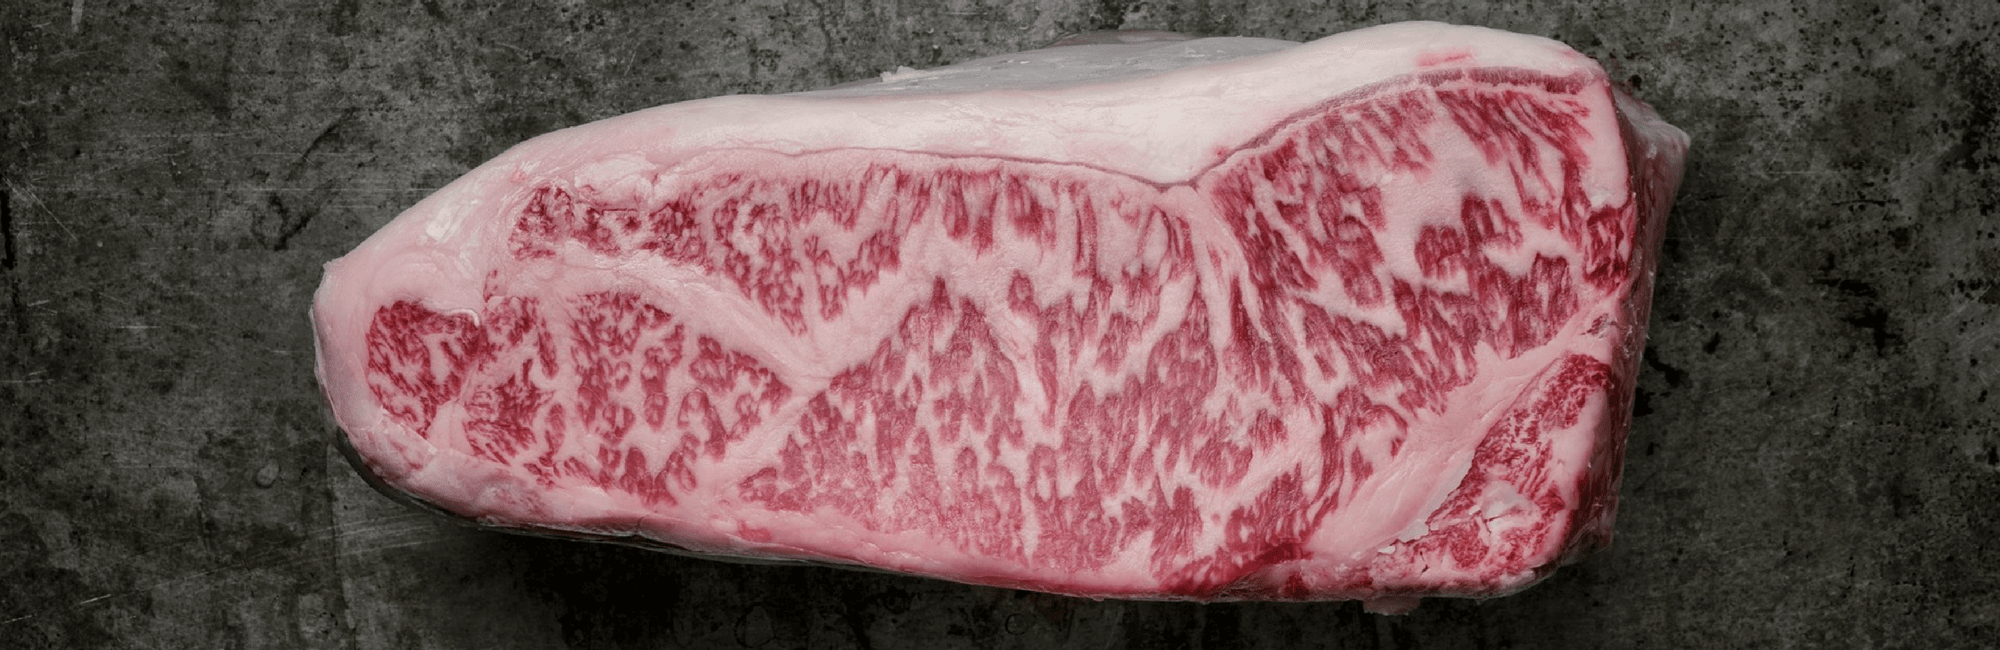 34 Mayfair is a steak restaurant located in Mayfair serving premium cut of beef including Japanese wagyu